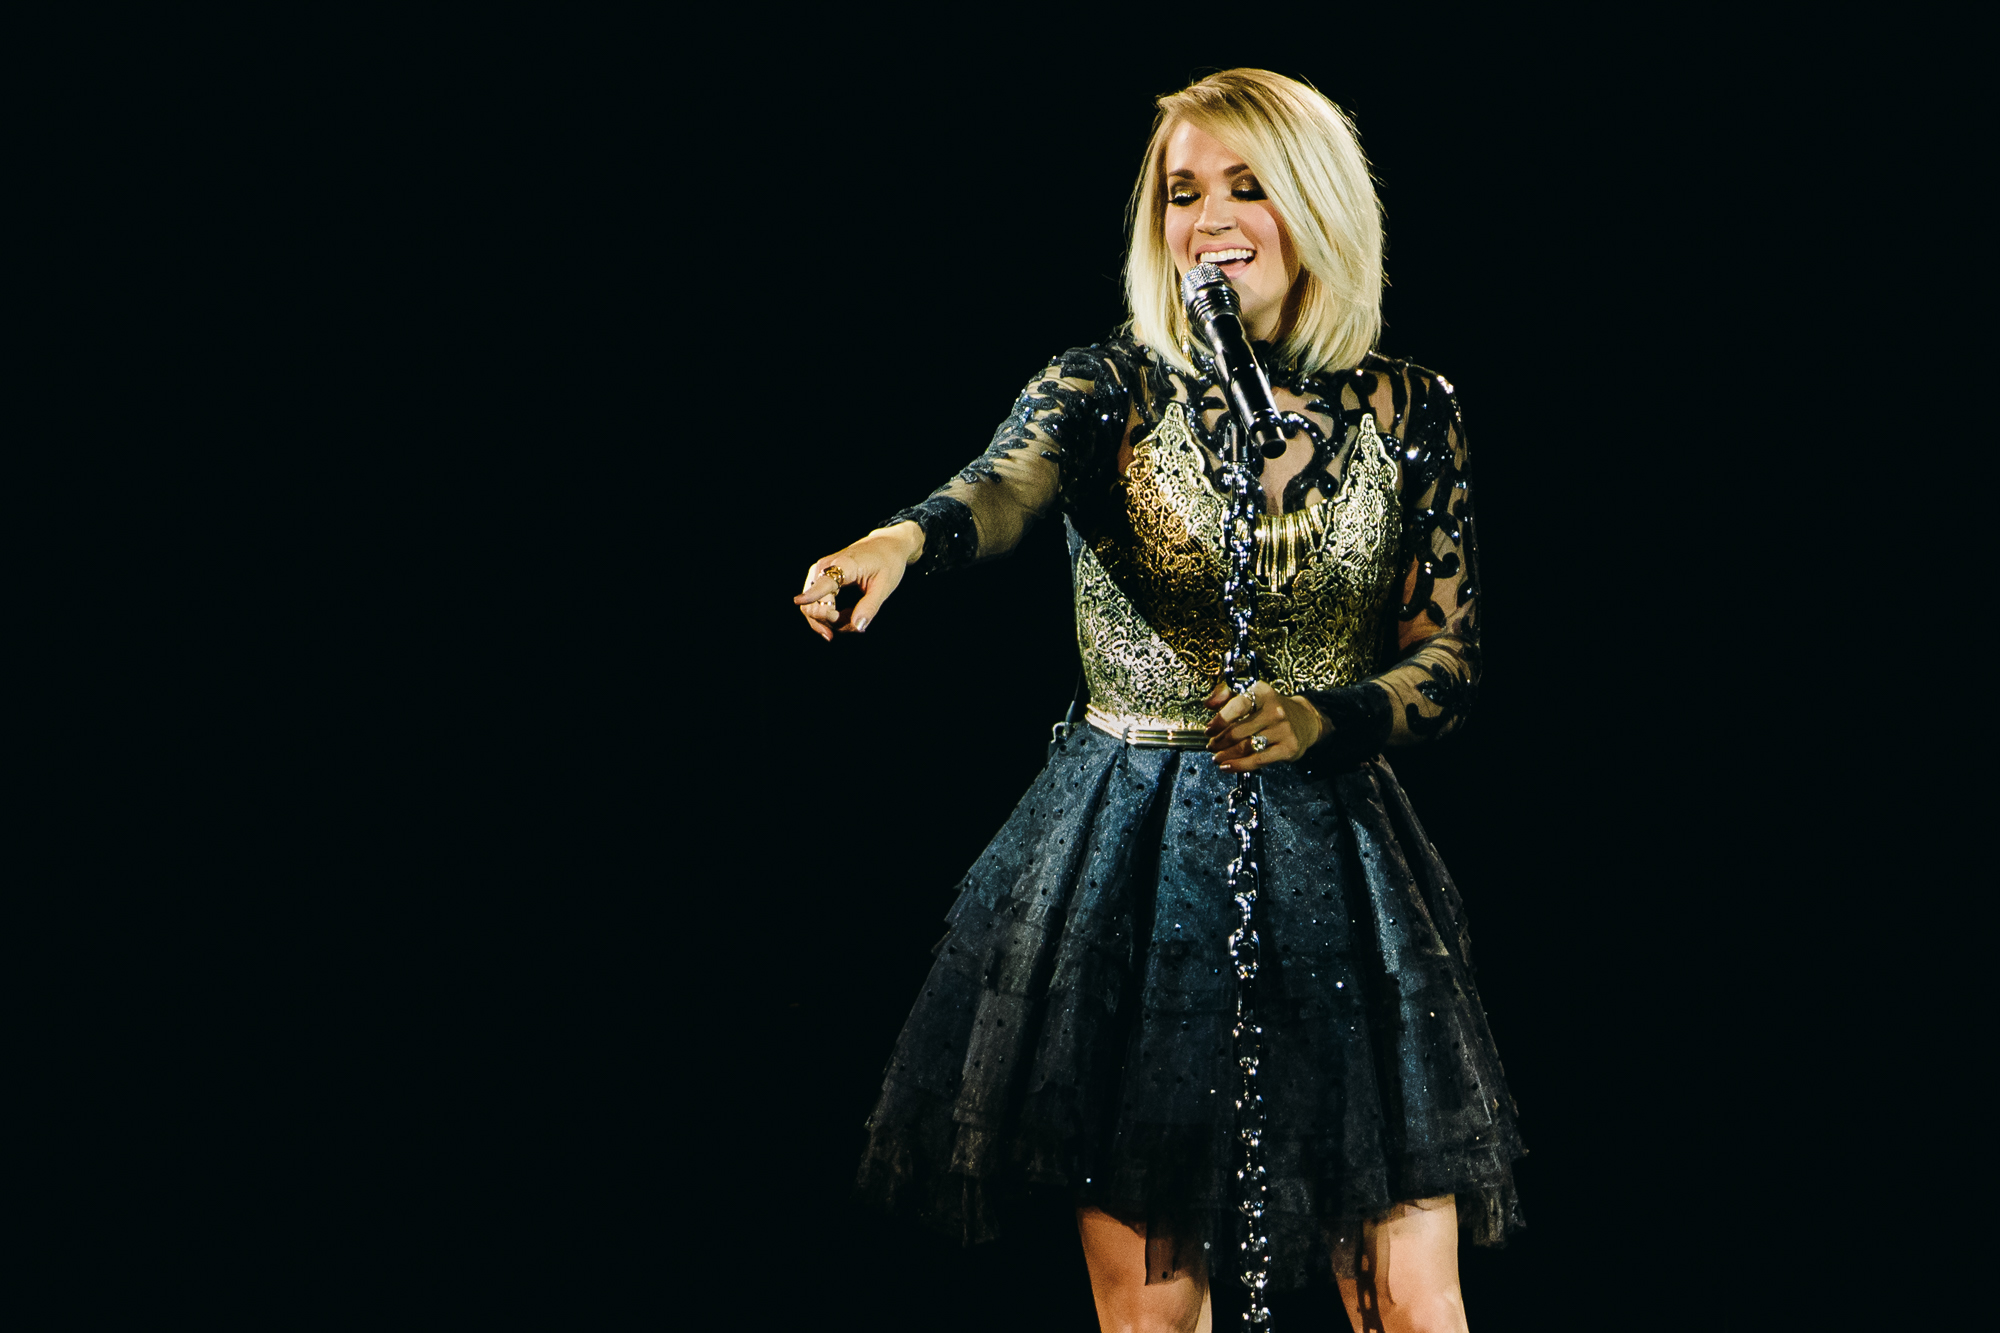 carrie underwood tour - HD2000×1333